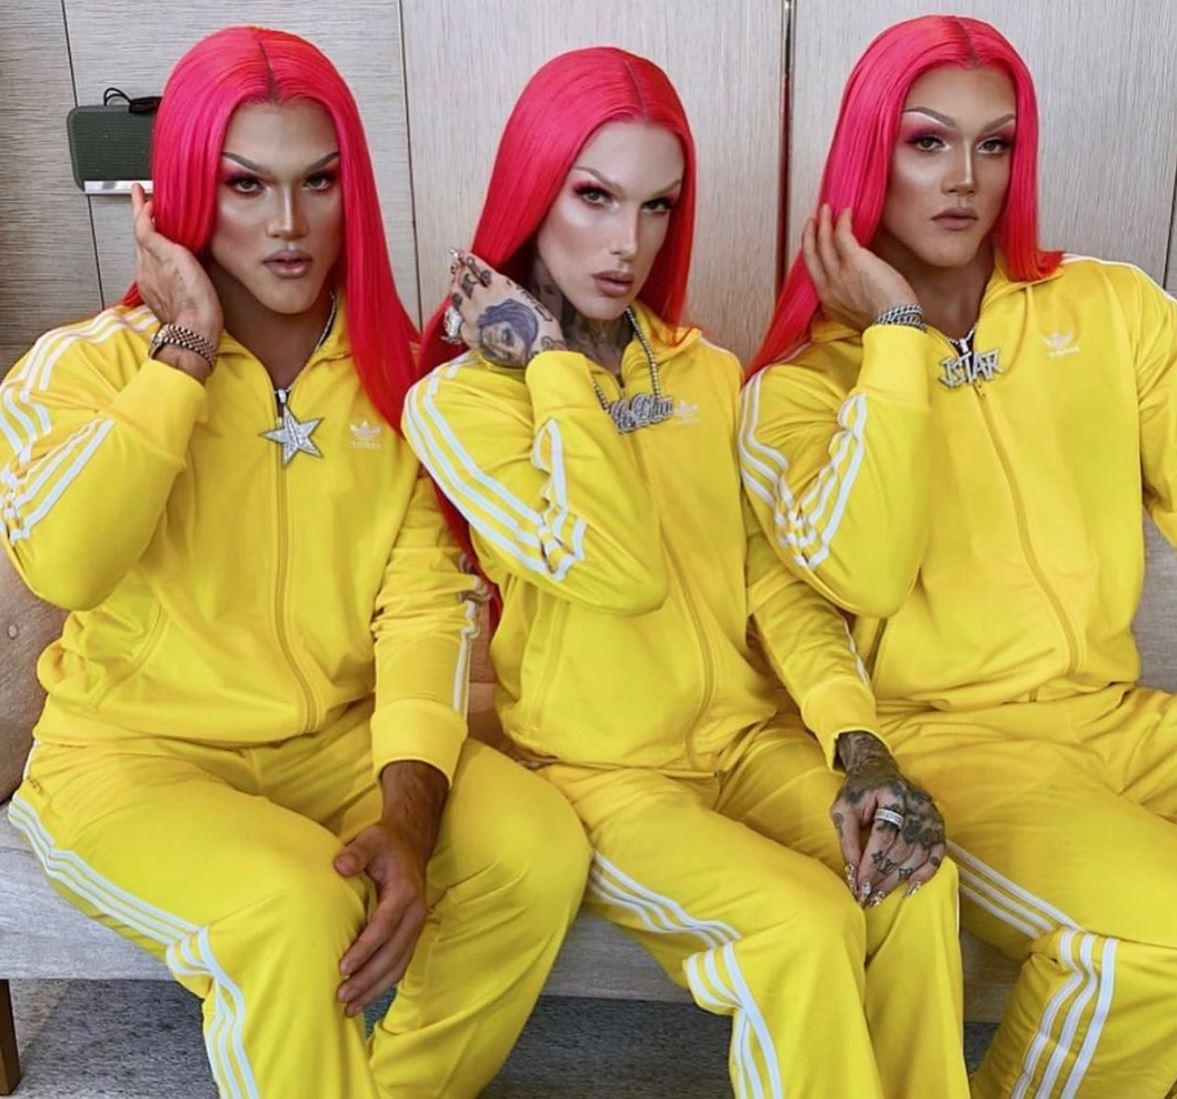 Jeffree Star, Instagram